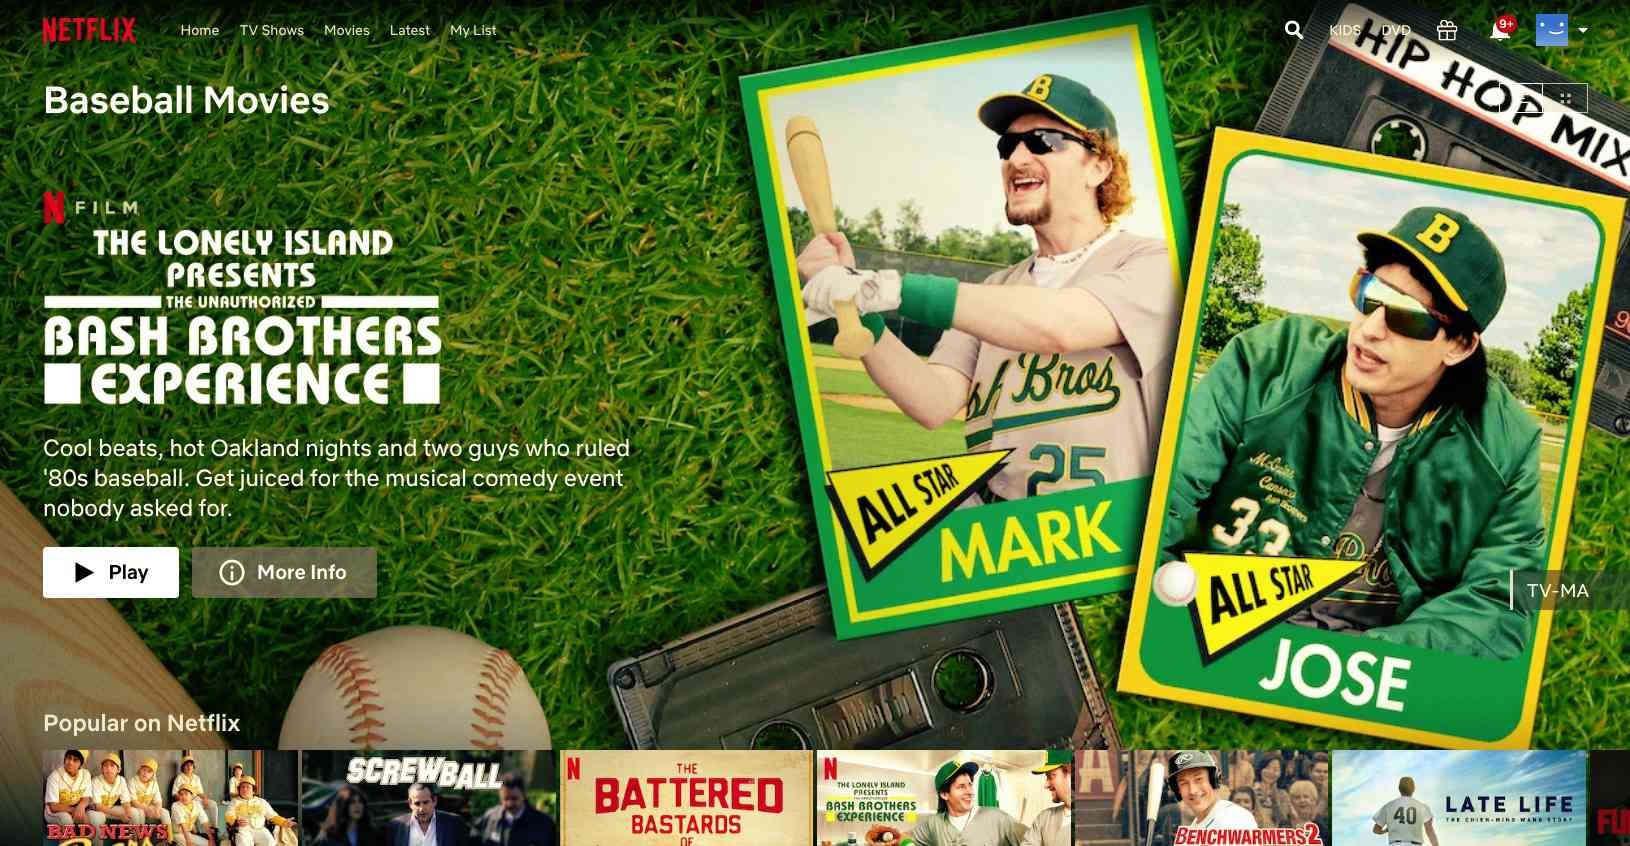 Baseball Movie Bash Brothers found with Netflix hidden codes